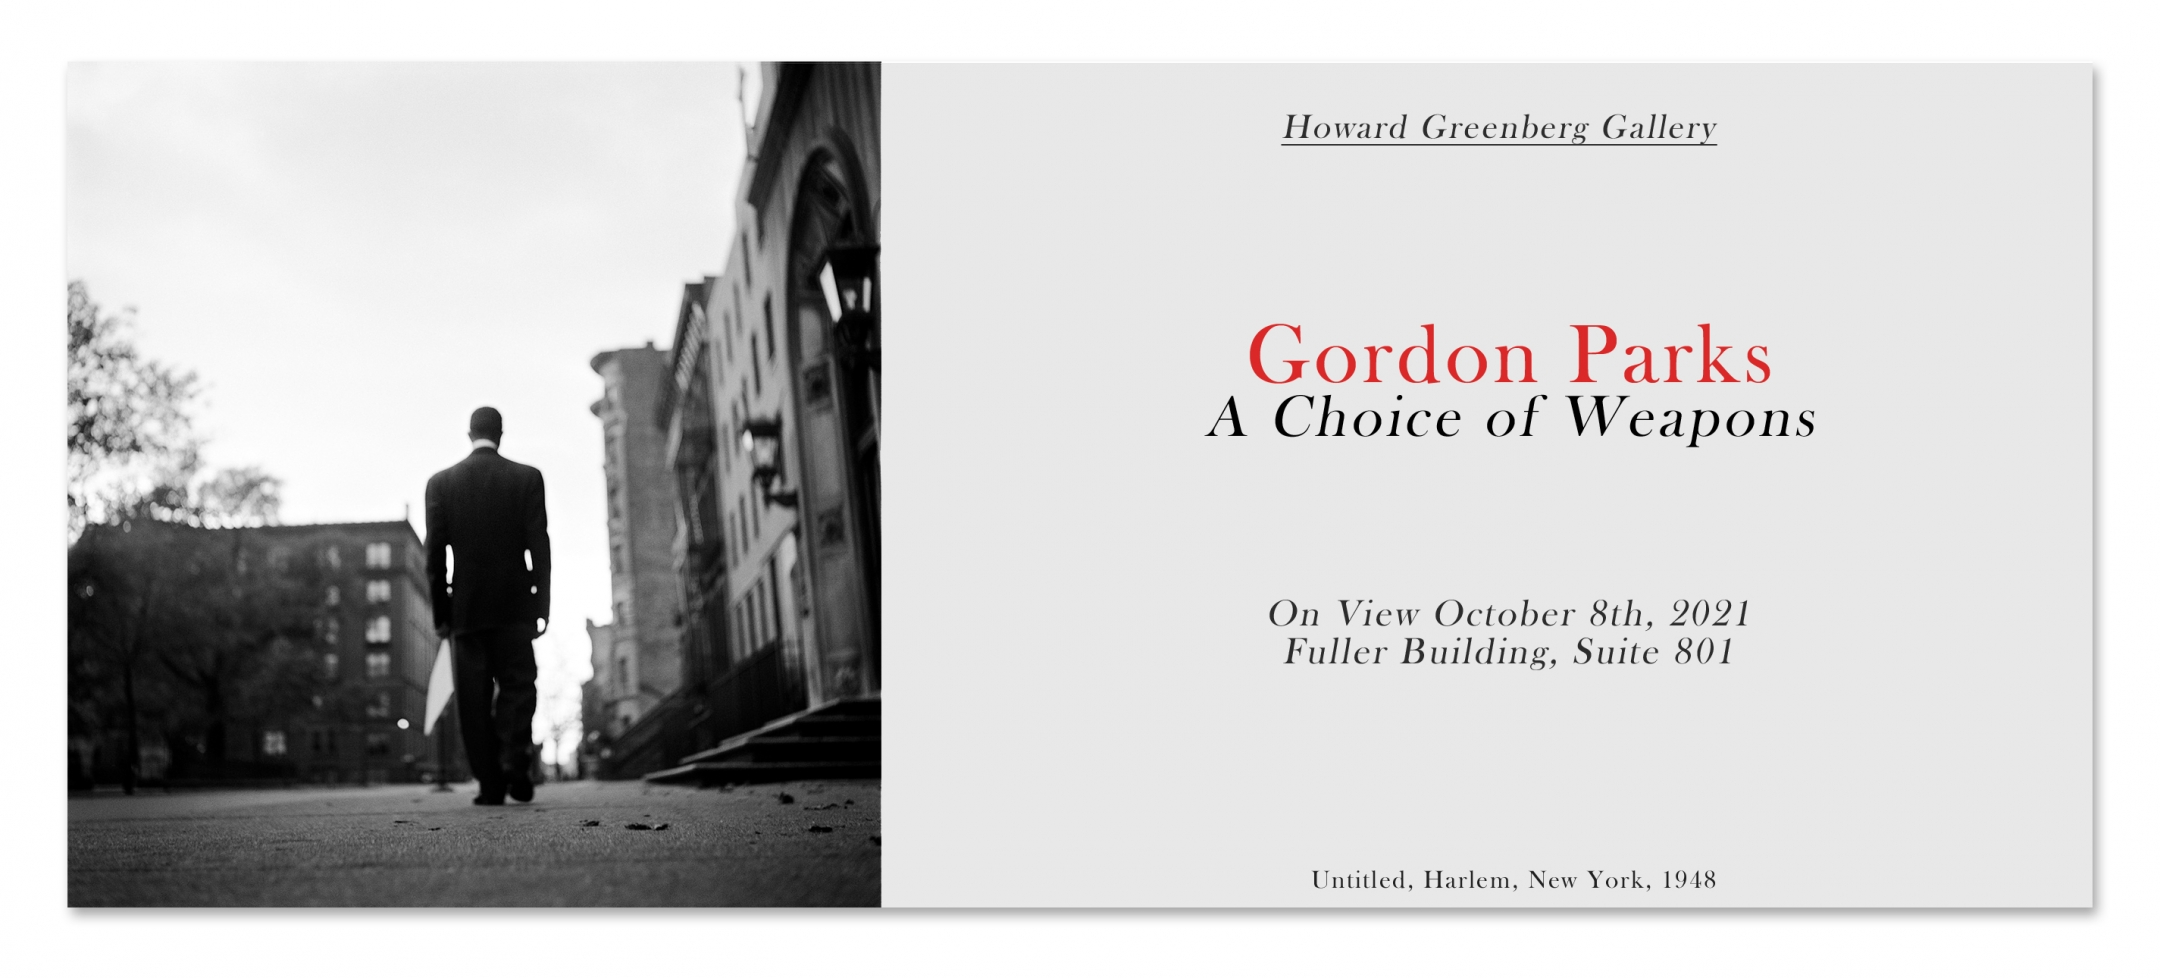 gordon parks, a choice of weapons, howard greenberg gallery, october 8th, opening, suite 801, new space, new york city